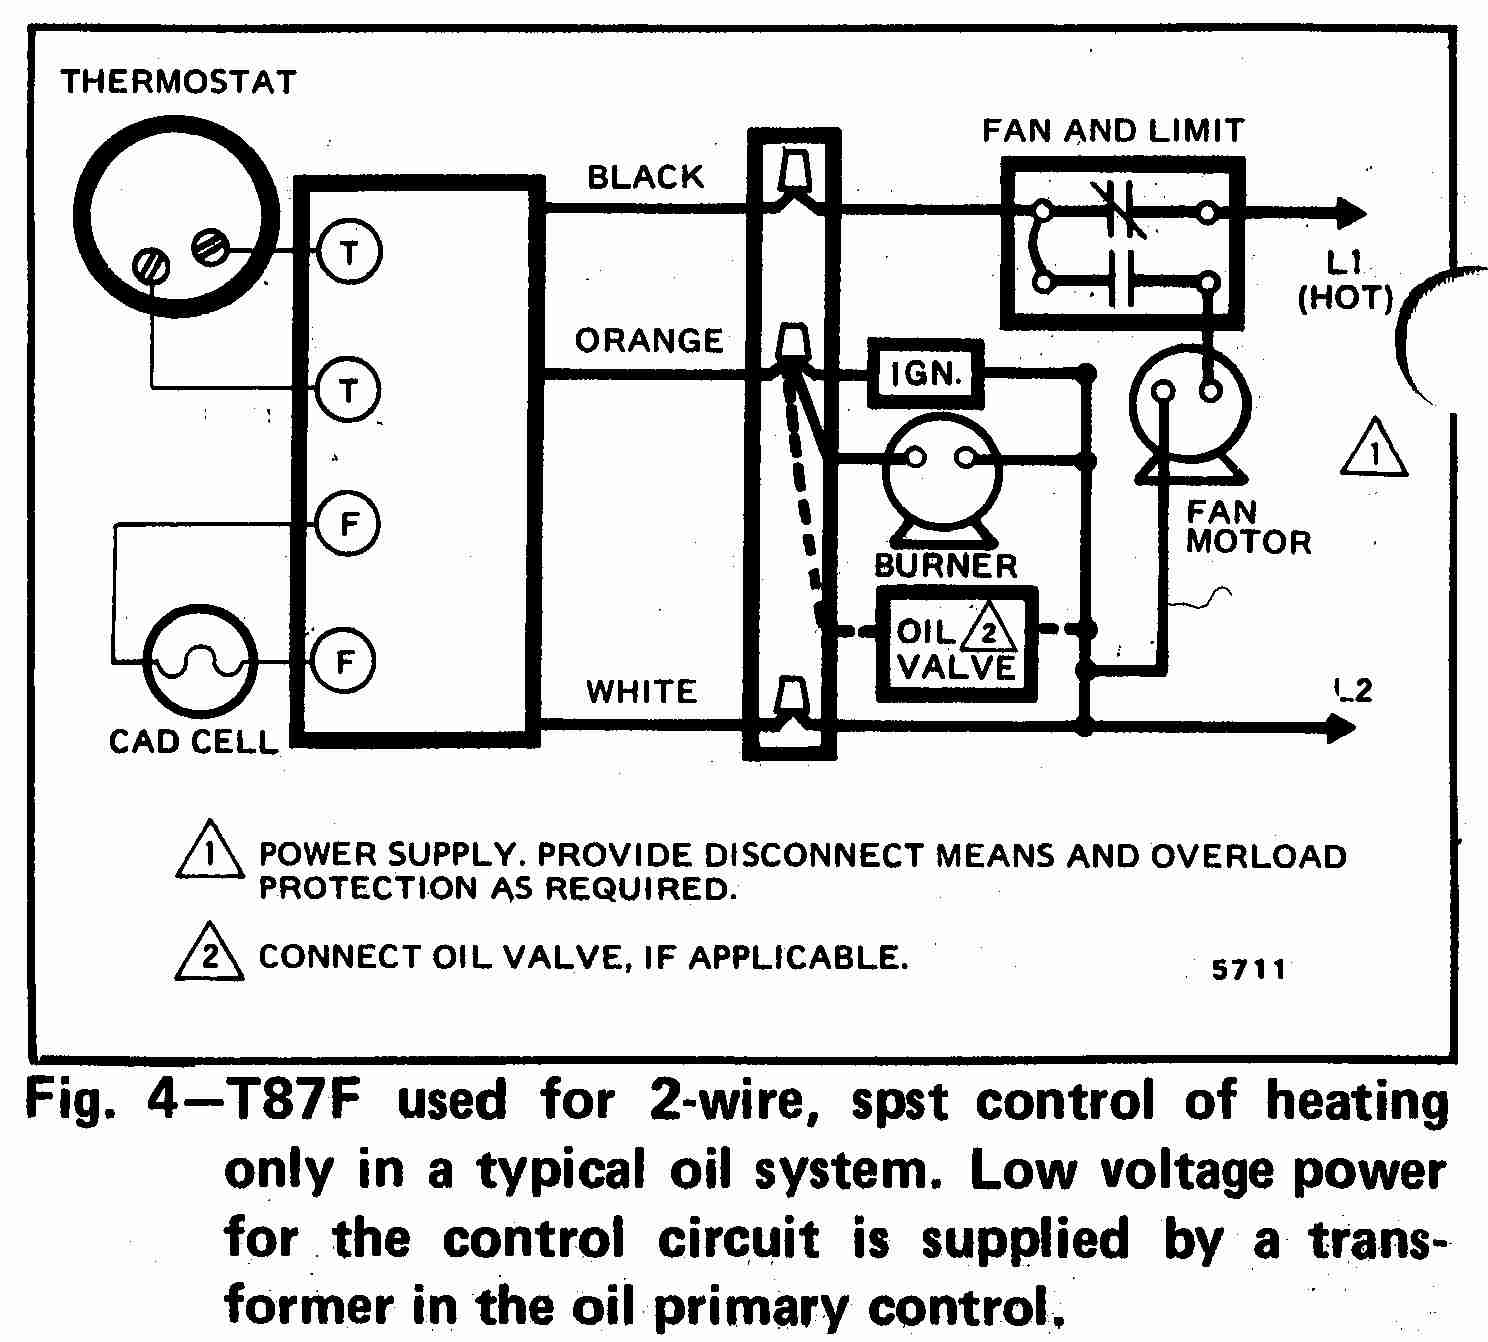 TT_T87F_0002_2W_DJF room thermostat wiring diagrams for hvac systems wiring diagram for dummies at nearapp.co